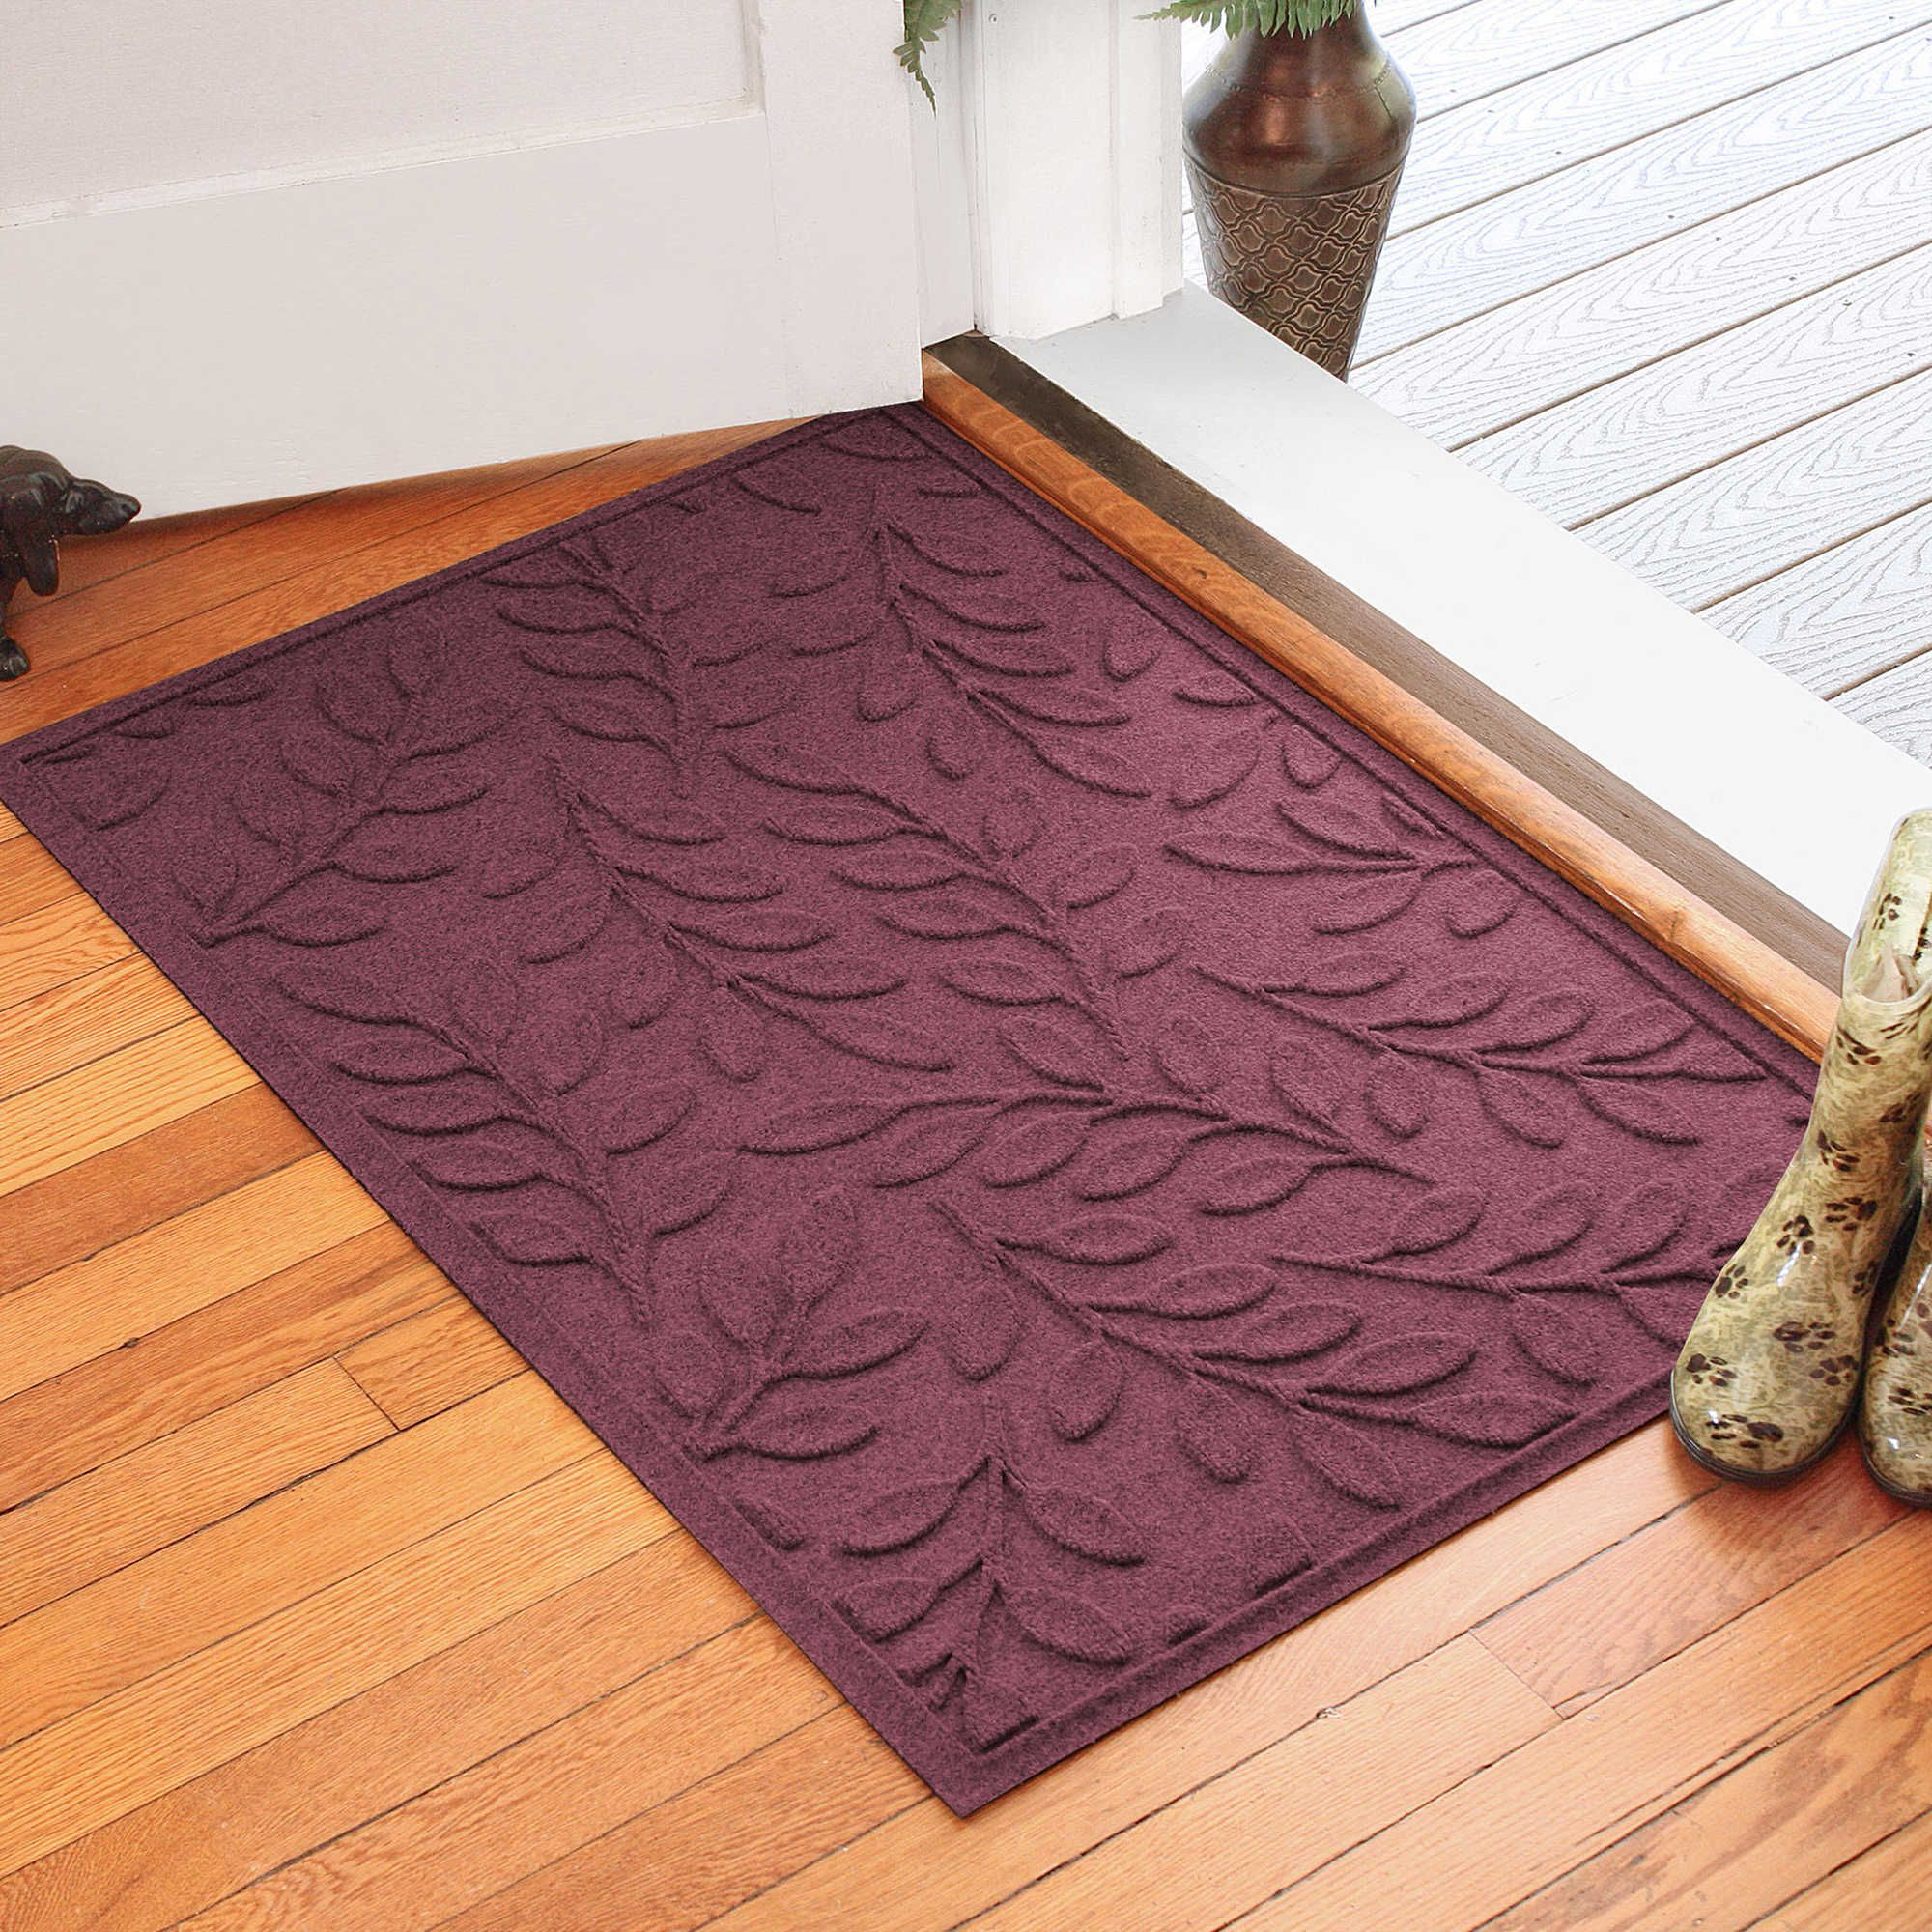 with rope h weather w doormatsoutdoor exterior argyle guard mat door x floral outdoor mats weatherguard of post doormats doormat colored indoor